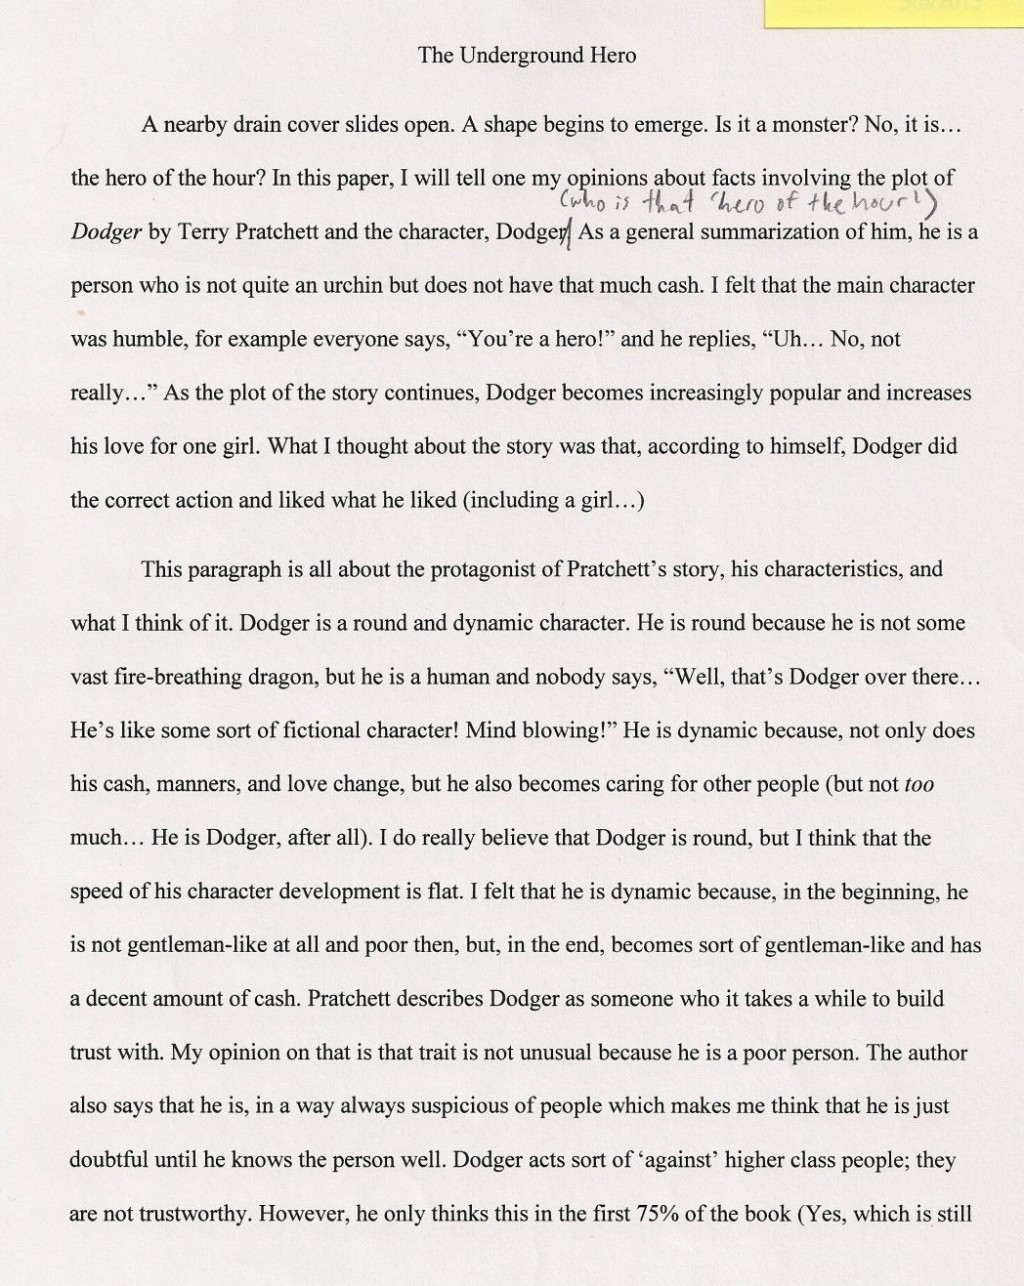 006 My Hero Essays On Heroes Good Writing What To Write Argumentative About The Undergro Should I 1048x1317 Staggering Essay Examples Michigan Superhero Large